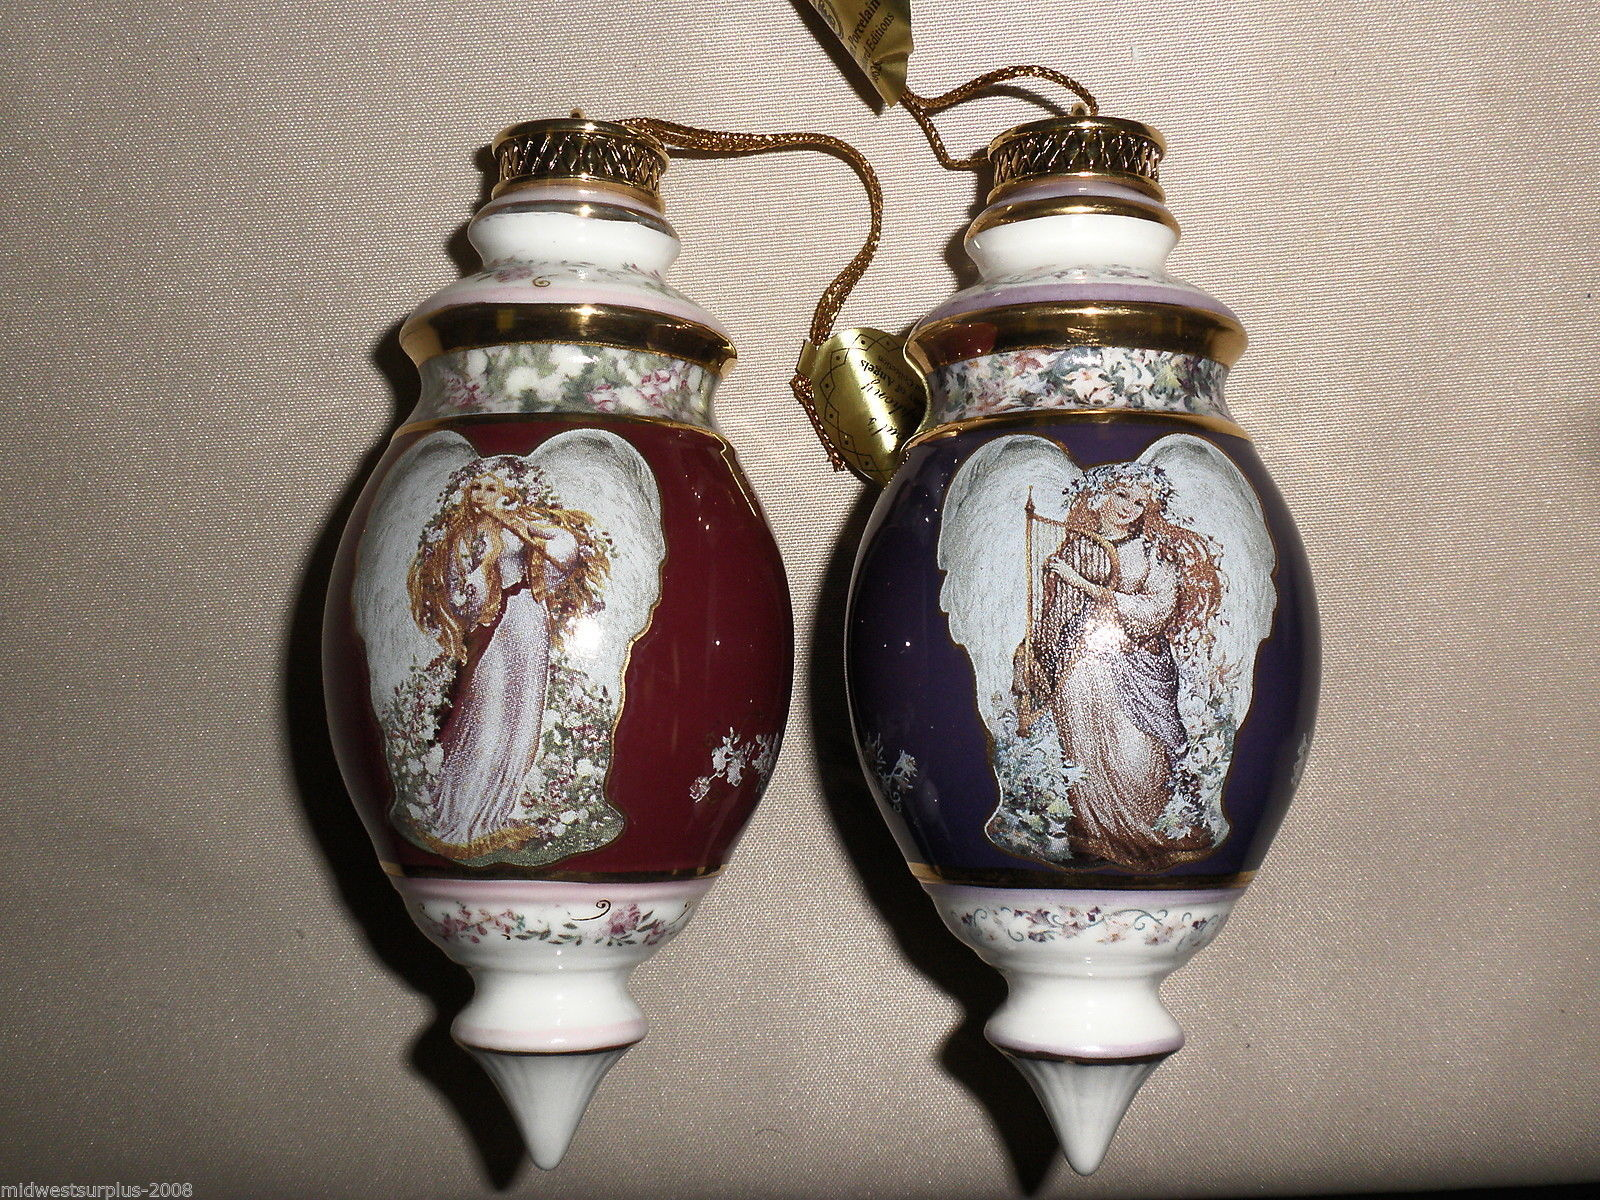 Bradford Editions 6th Issue A Symphony Of Angels Ornaments Collection(2) #68626